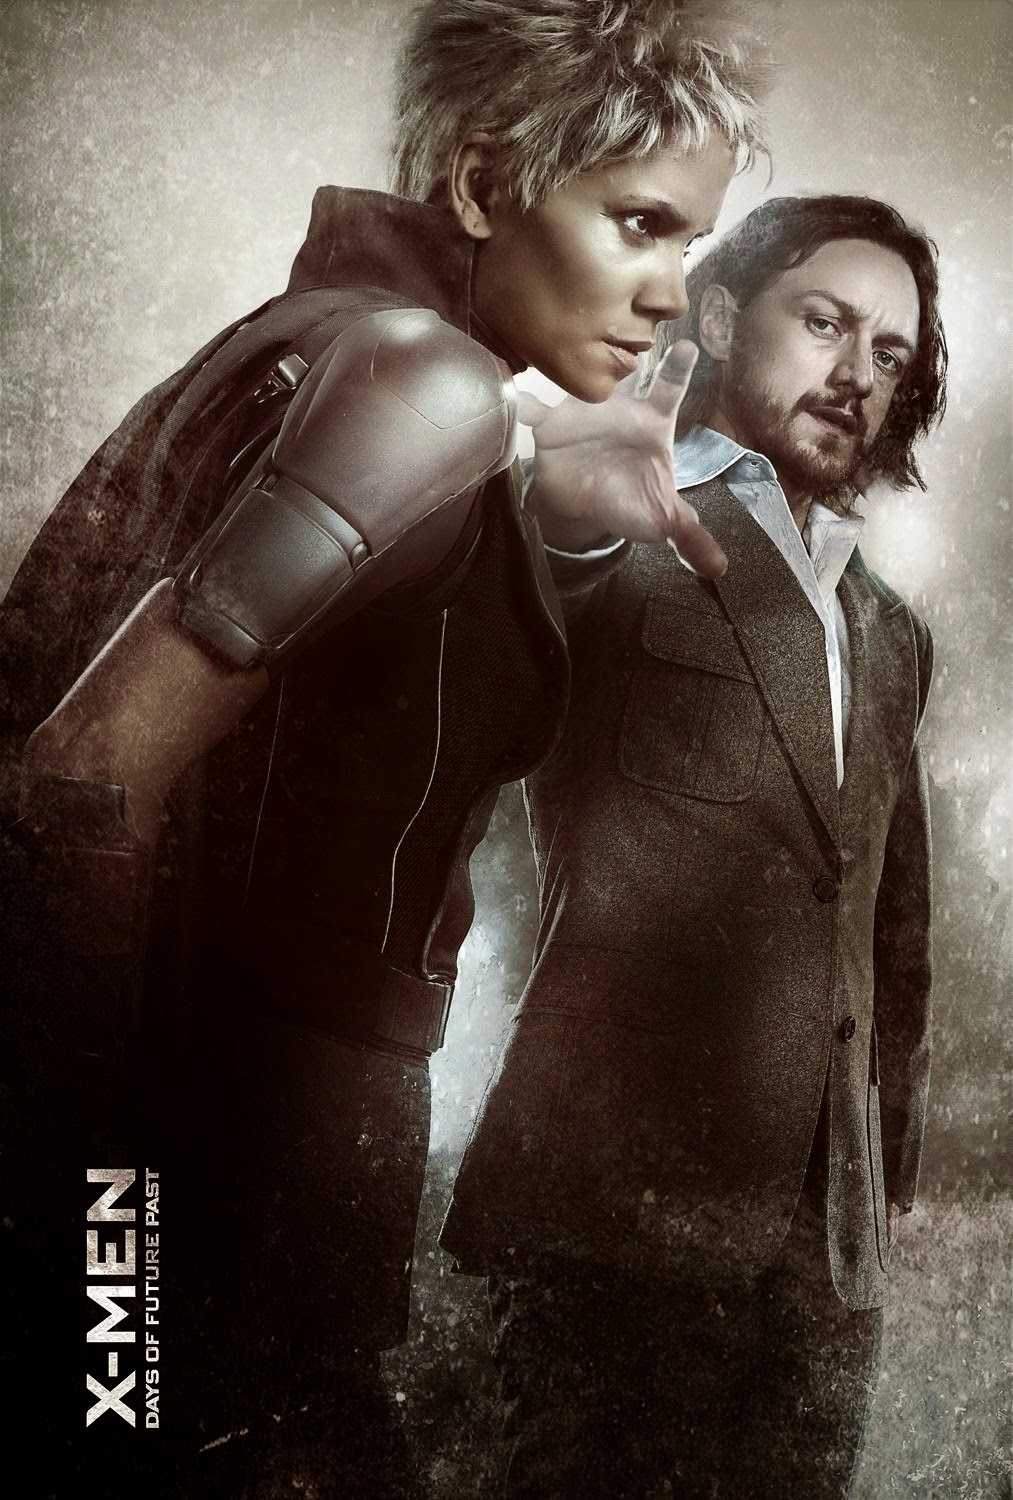 X-men Days Of Future Past Character Poster